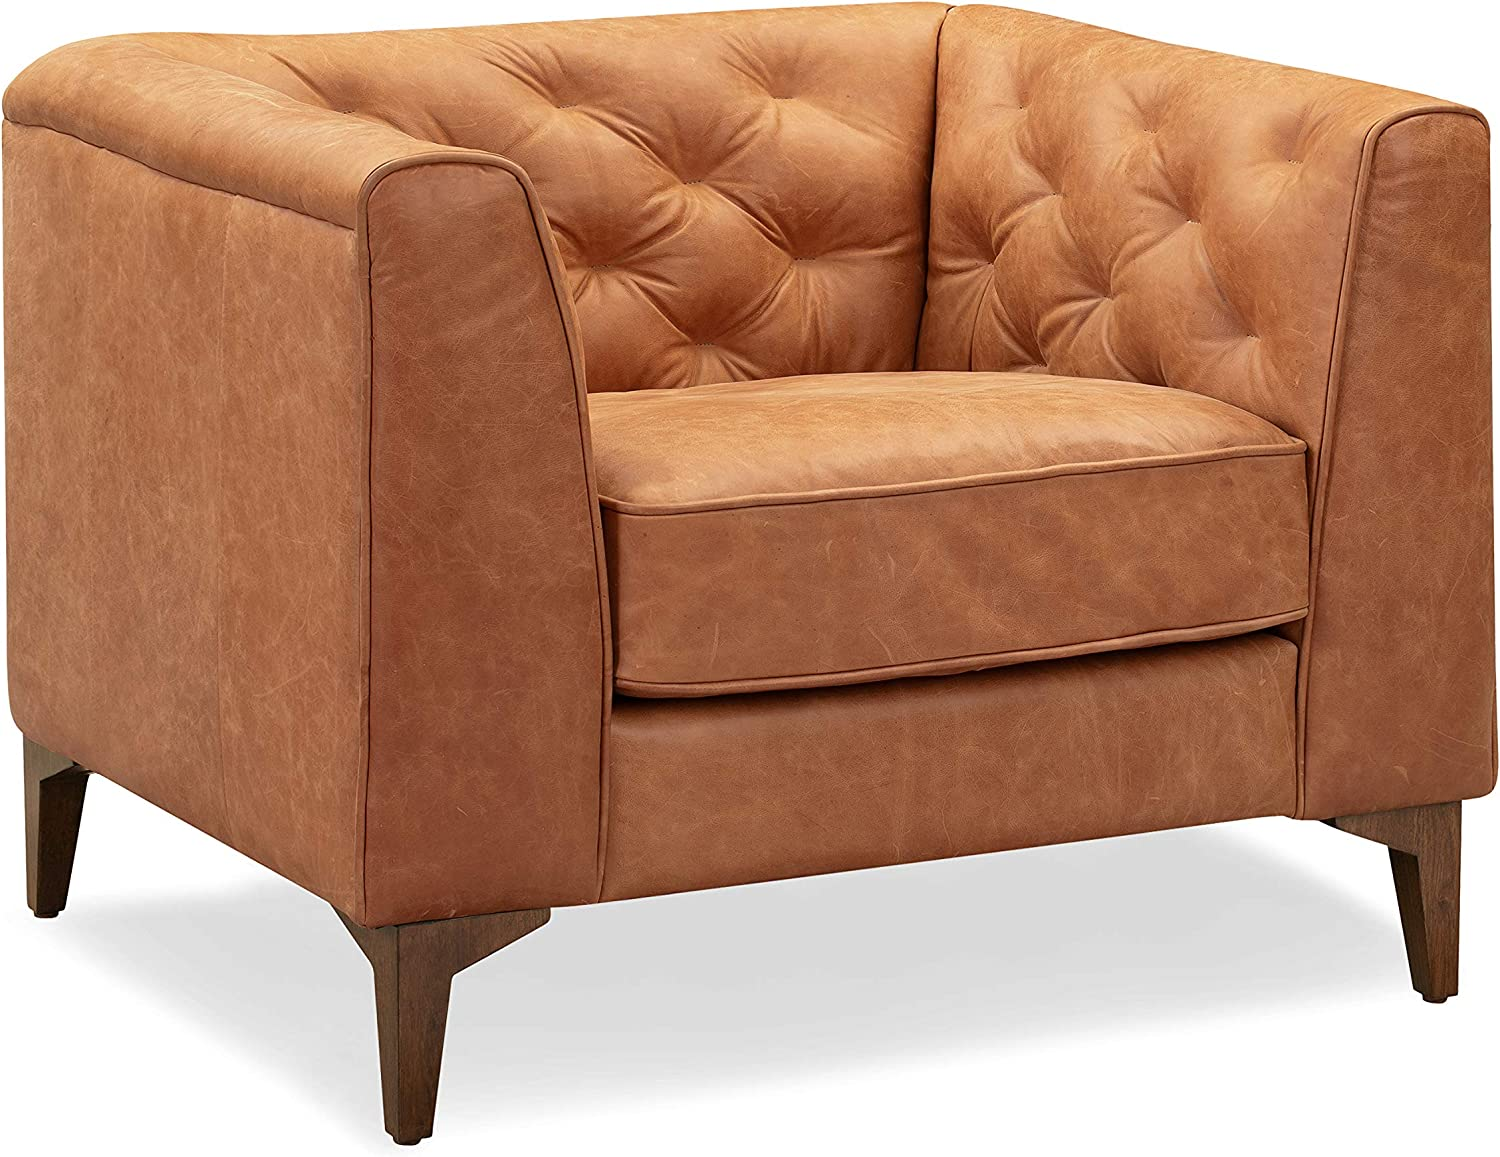 Poly and Bark Essex Lounge Chair in Full-Grain Pure-Aniline Italian Tanned Leather in Cognac Tan